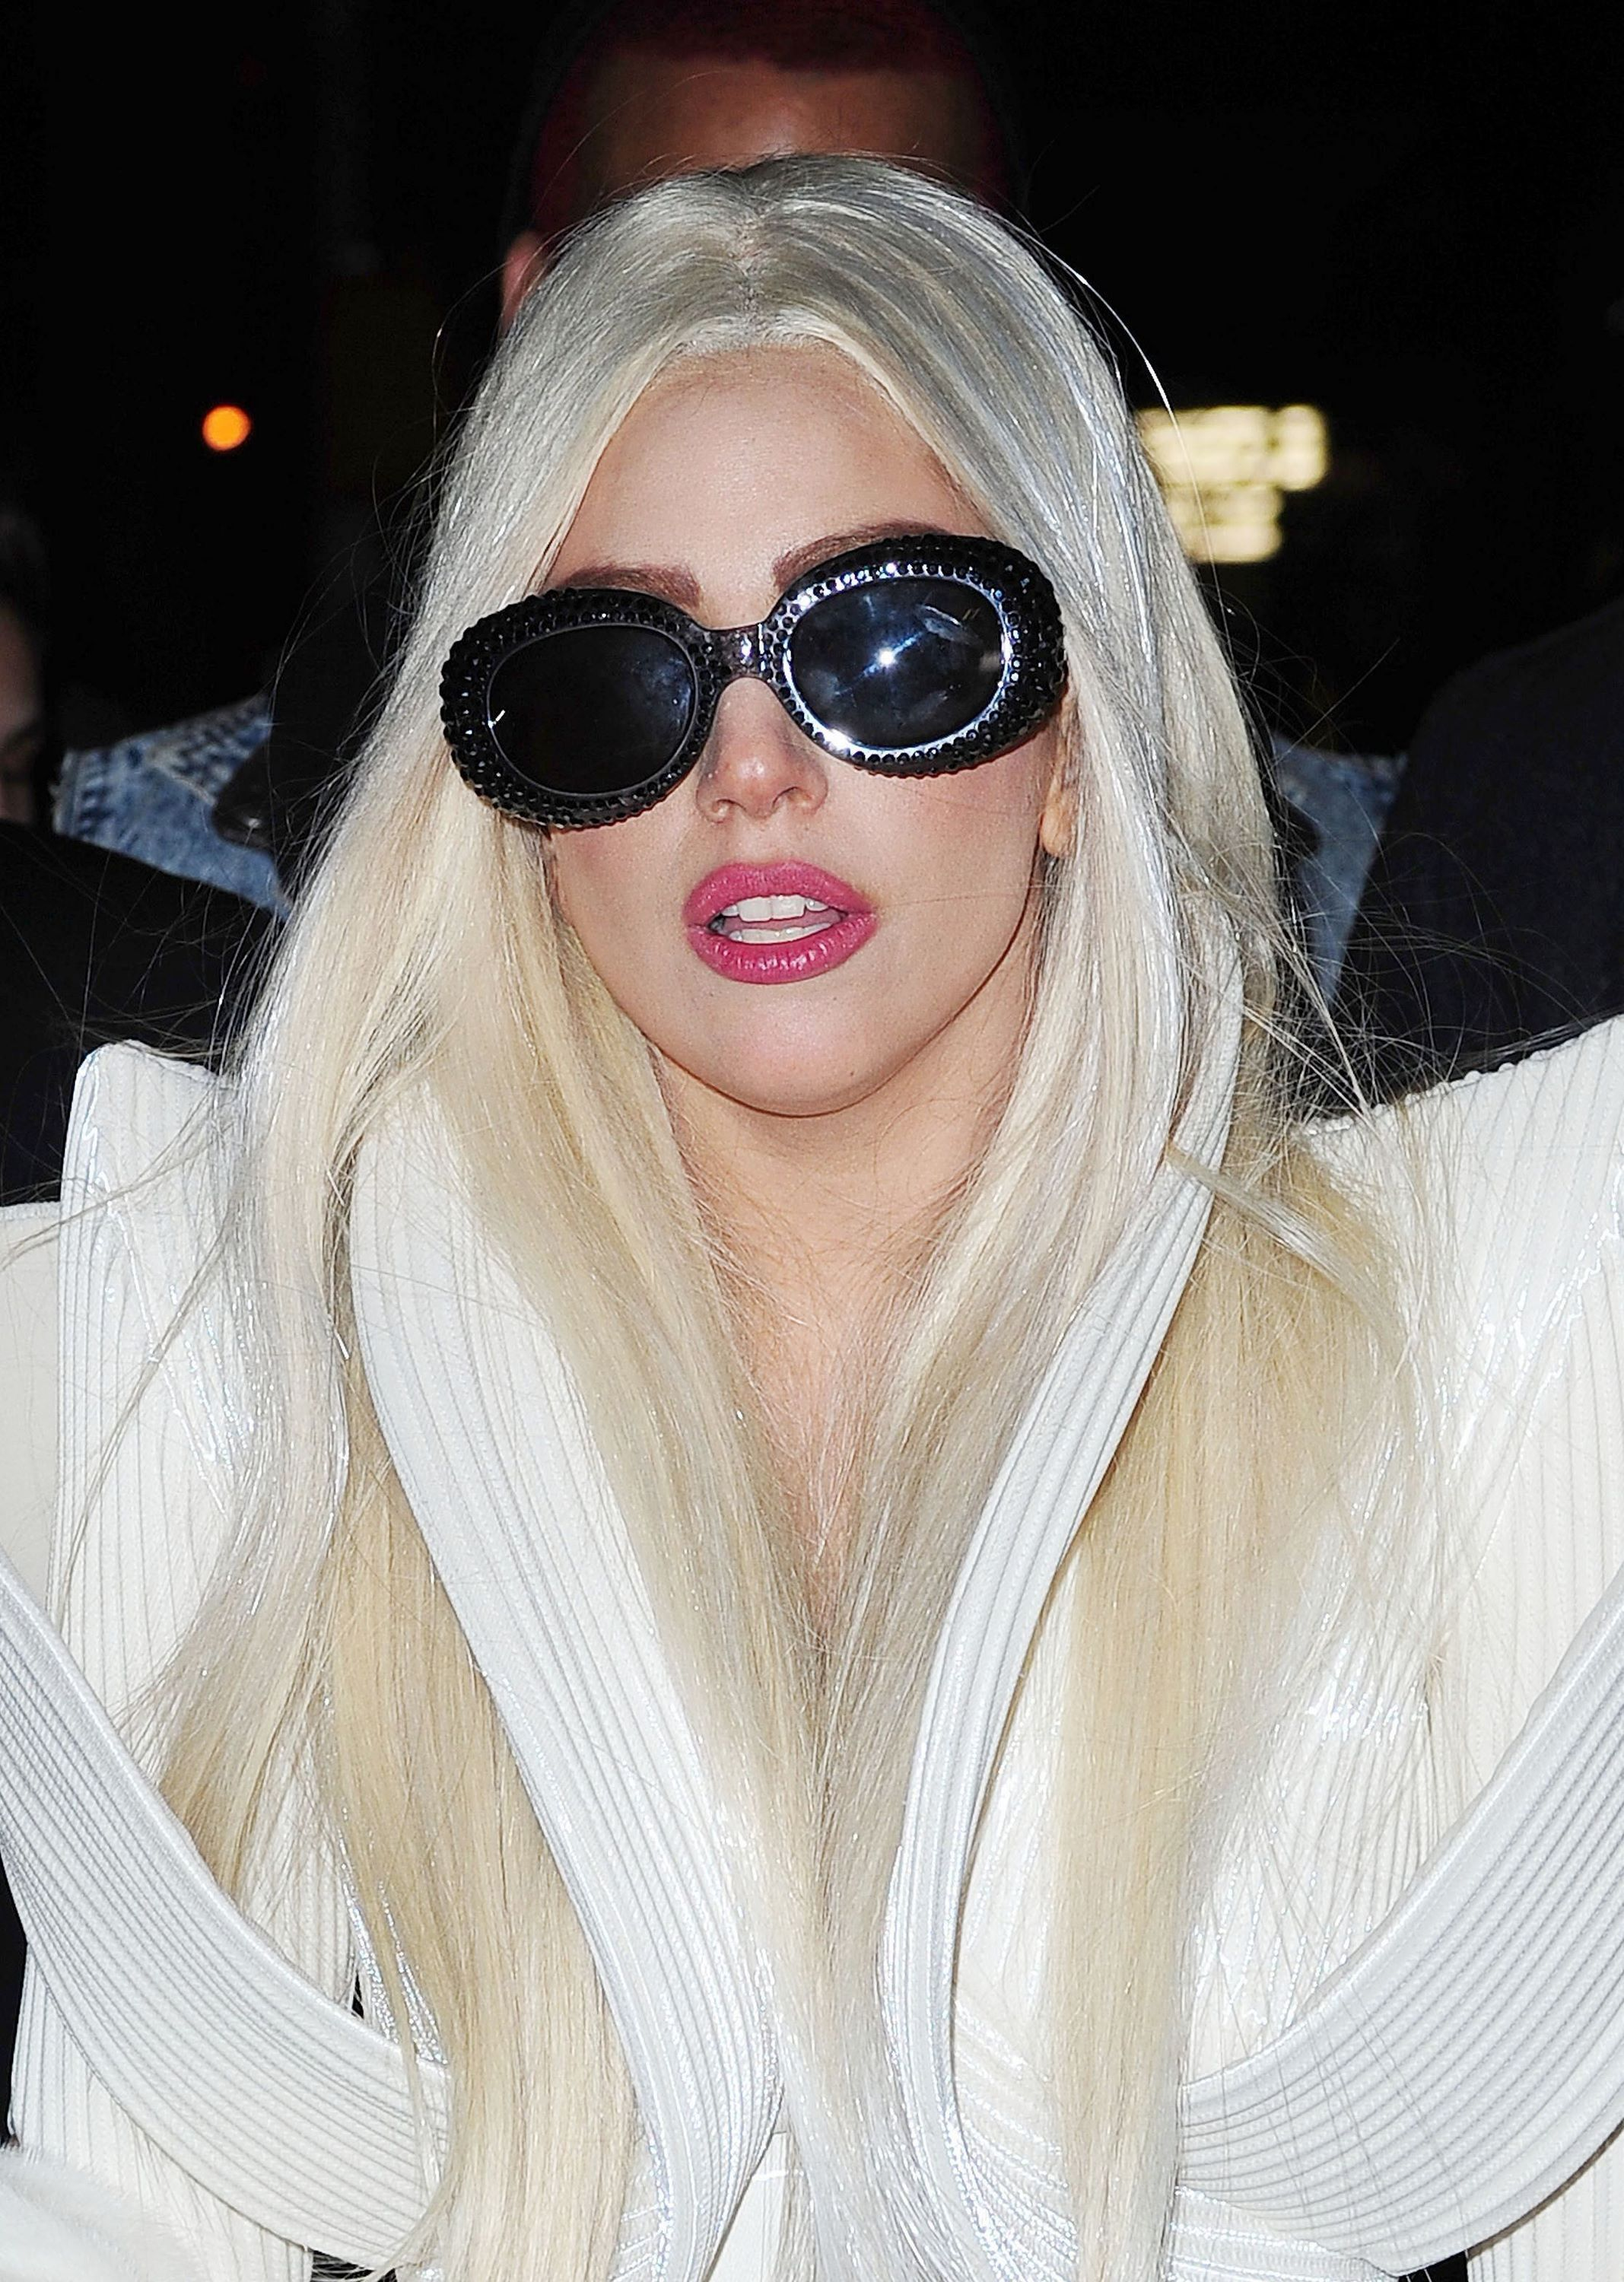 File:12-14-12 Out in New York after rehearsals 003.jpg